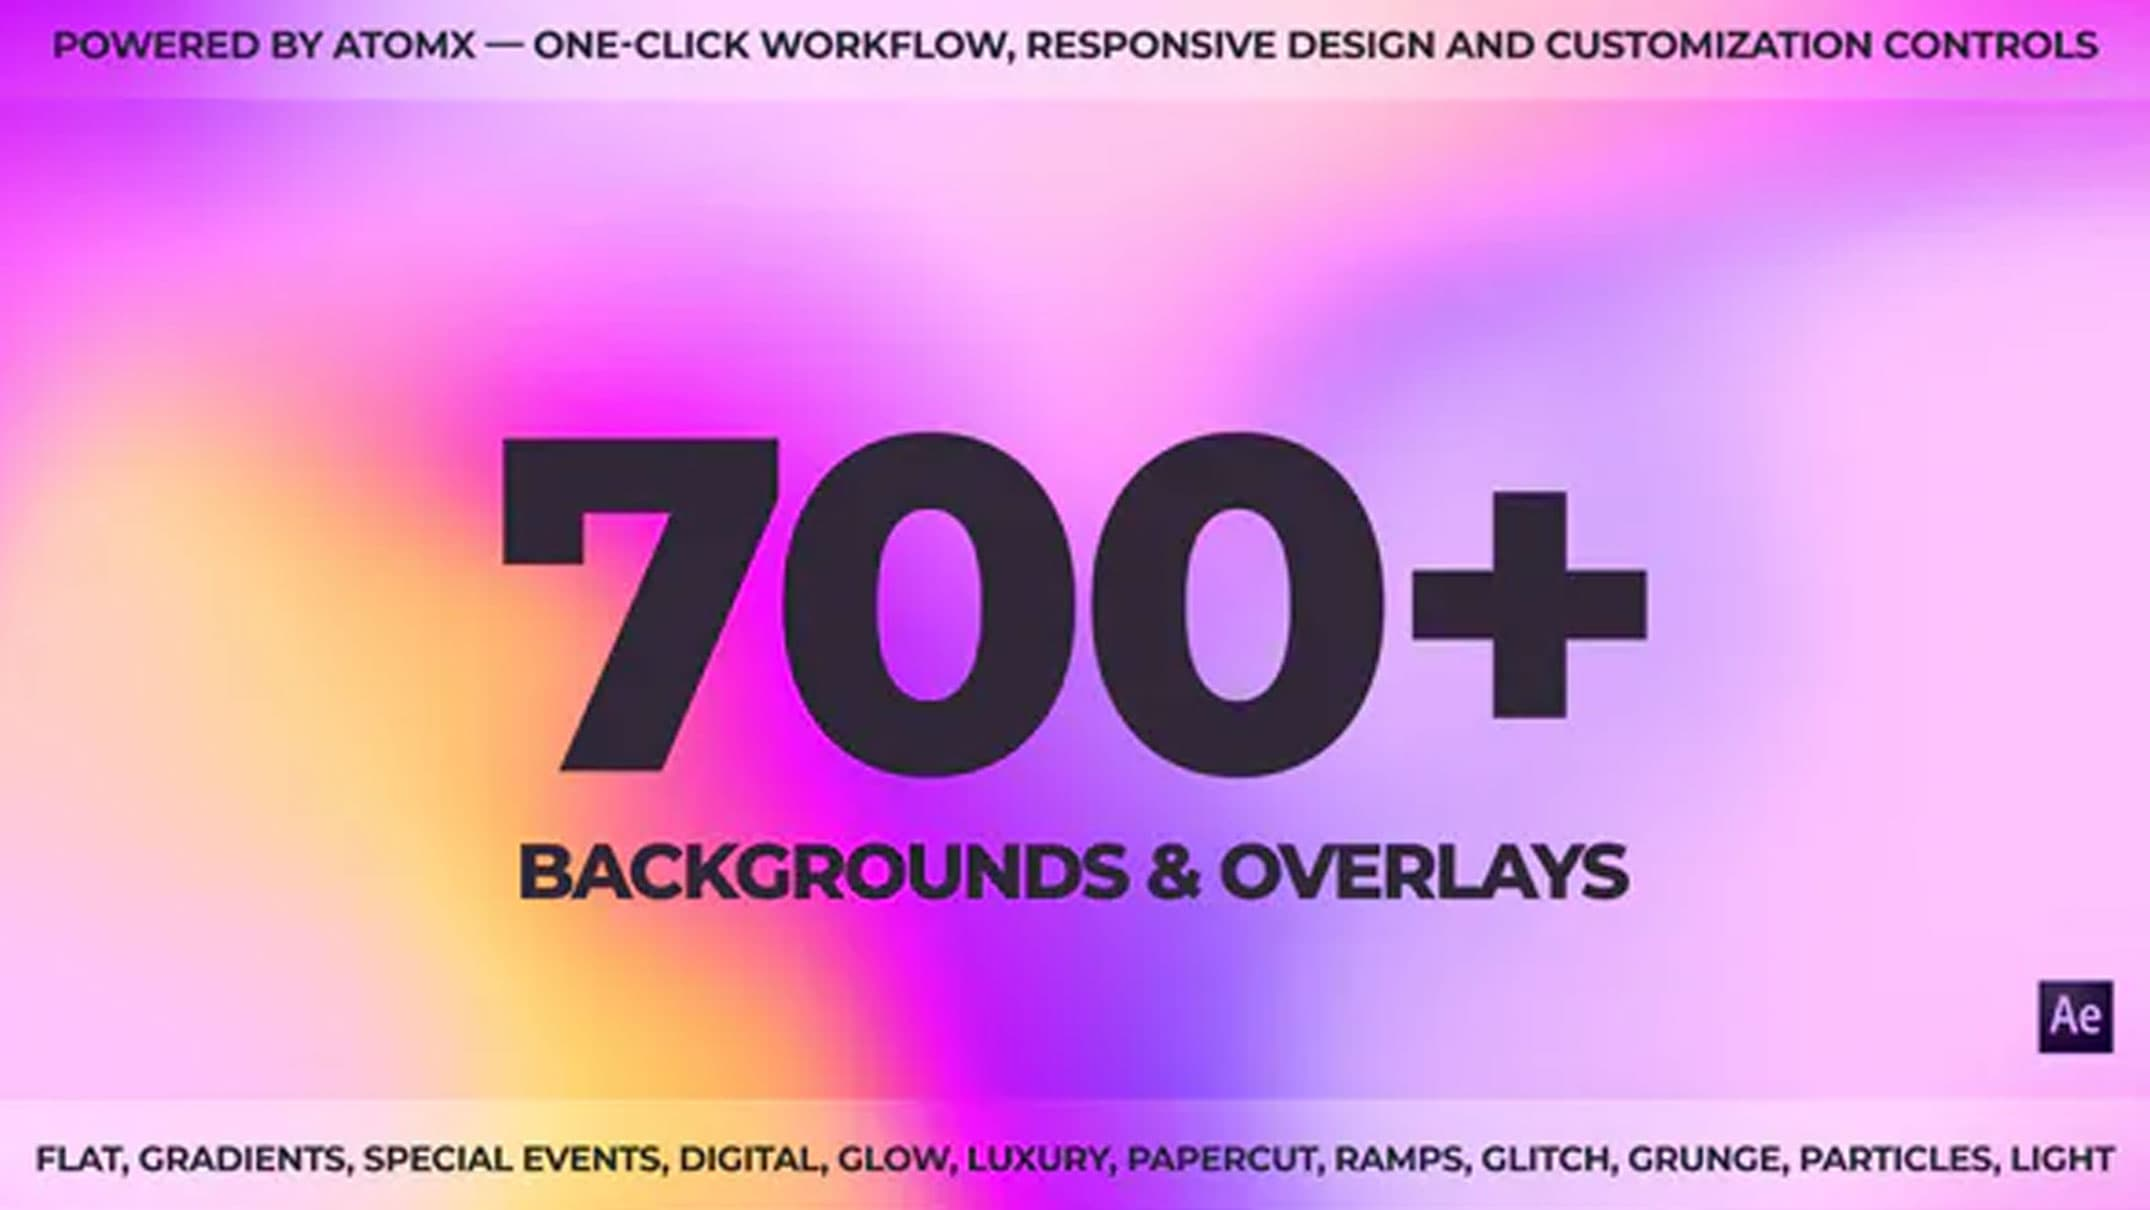 Videohive AtomX Backgrounds Pack 32623942 Free Download Epzilla.com